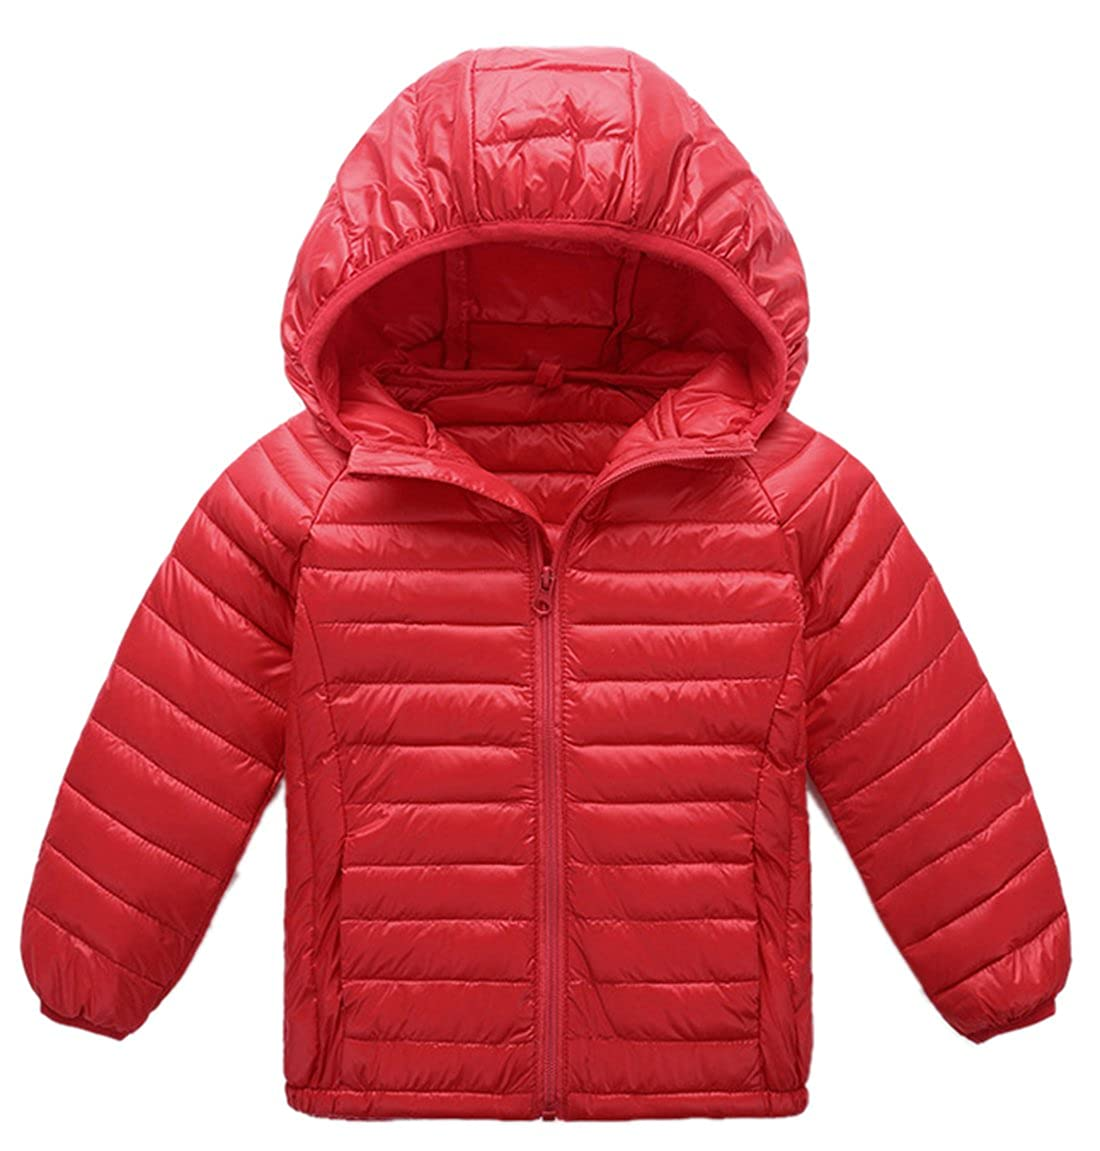 Roffatide Unisex Children Lightweight Down Coat Warm Puffer Jacket Windproof Outwear